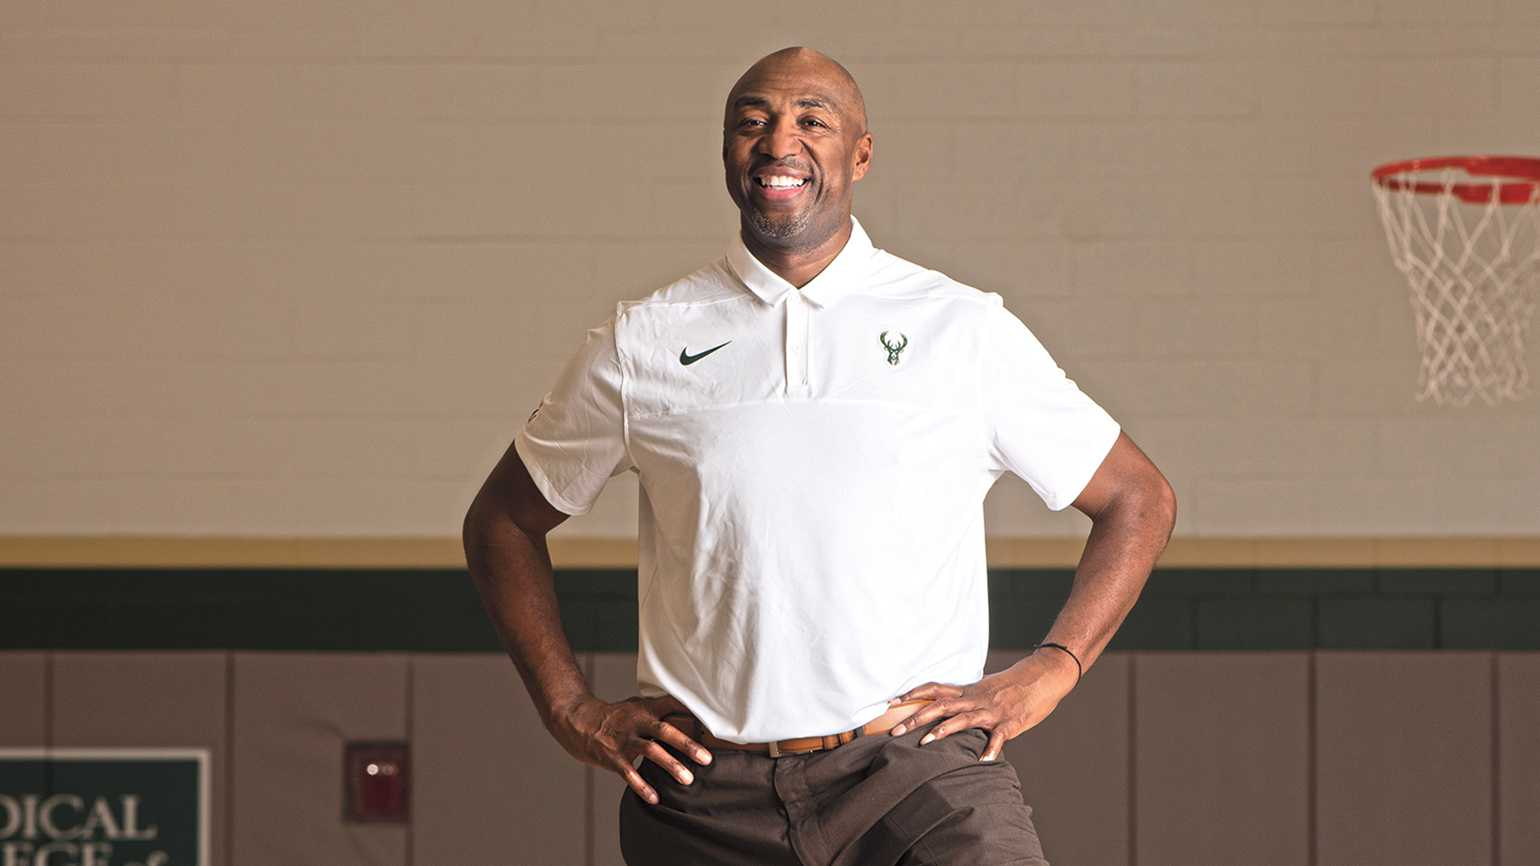 Author and former NBA All-Star Vin Baker